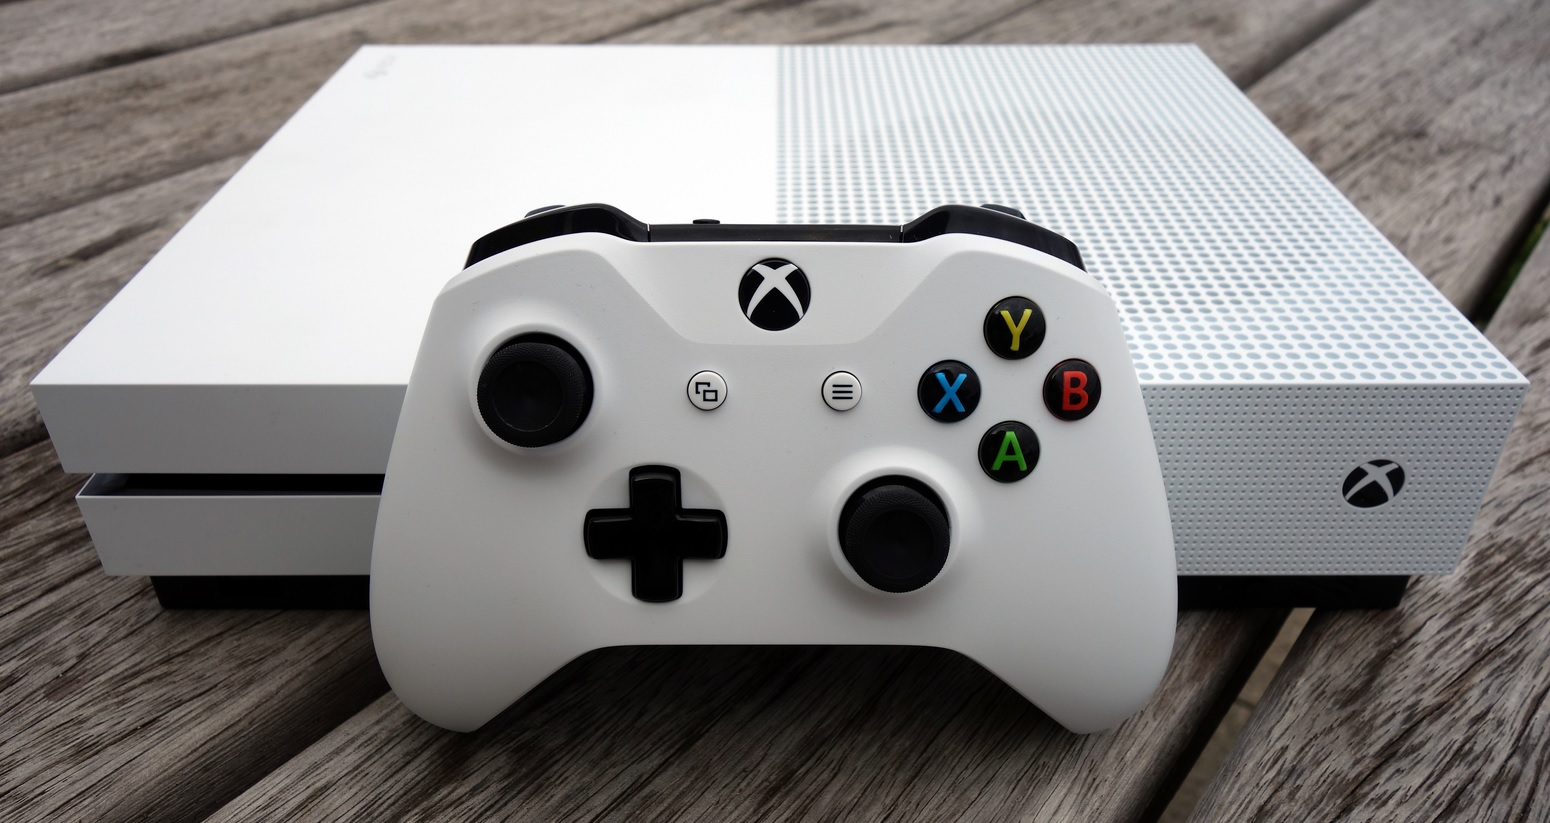 Amazon-Angebote am 18.1.: Xbox One S FIFA mit 2. Controller, Gaming-Notebook